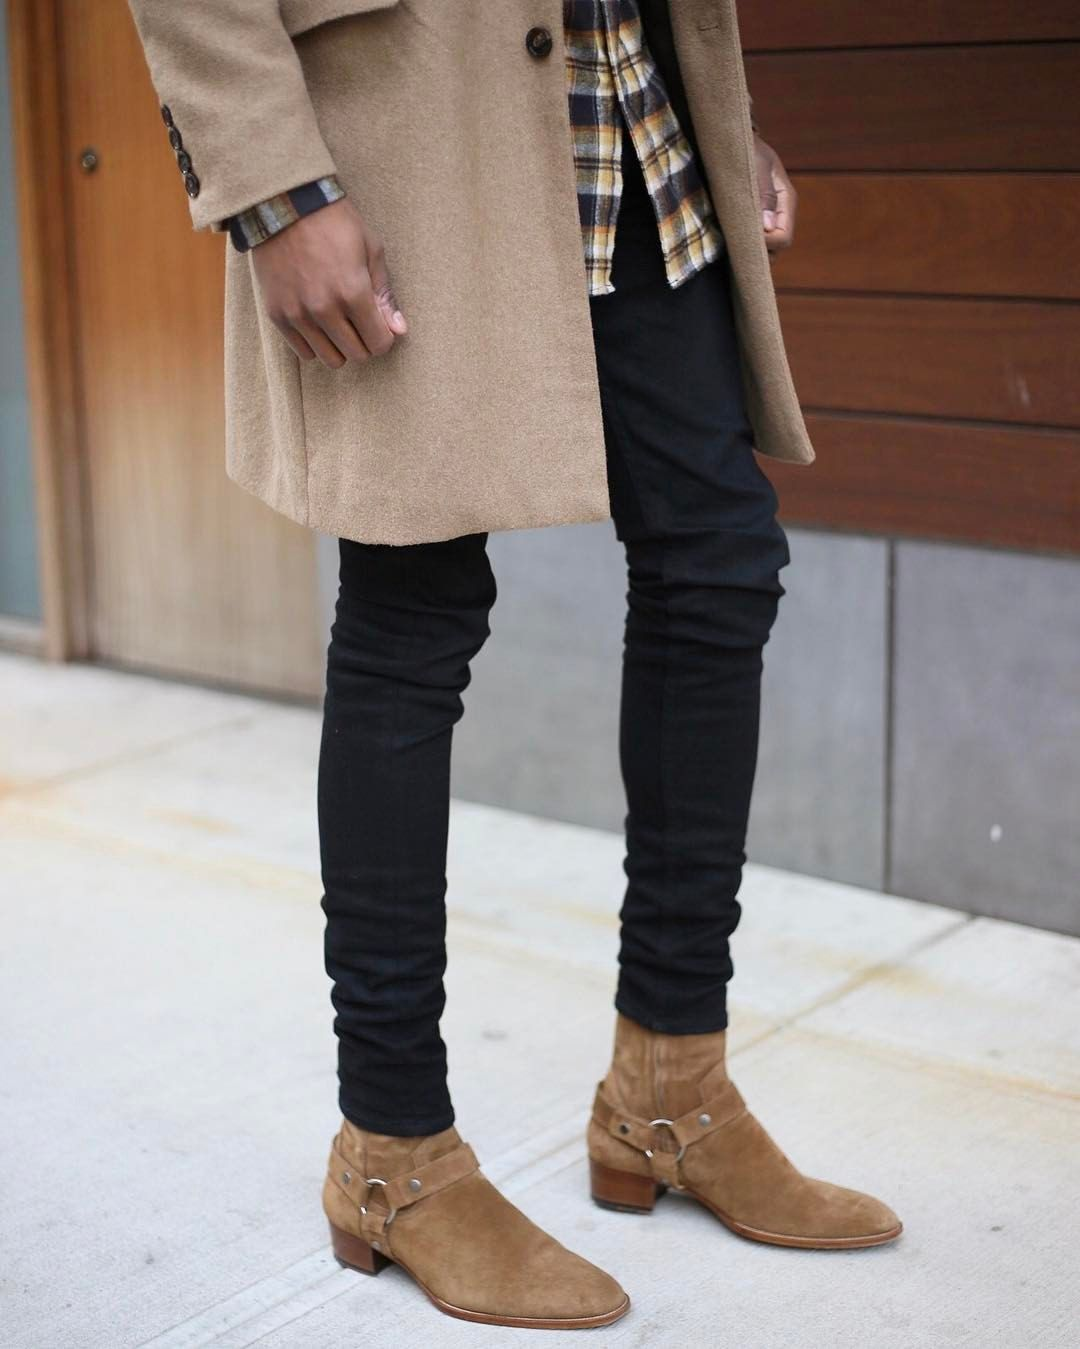 See This Instagram Photo By Lvrd Grant 633 Likes Streetwear Outfit Mens Street Style Chelsea Boots Men Outfit